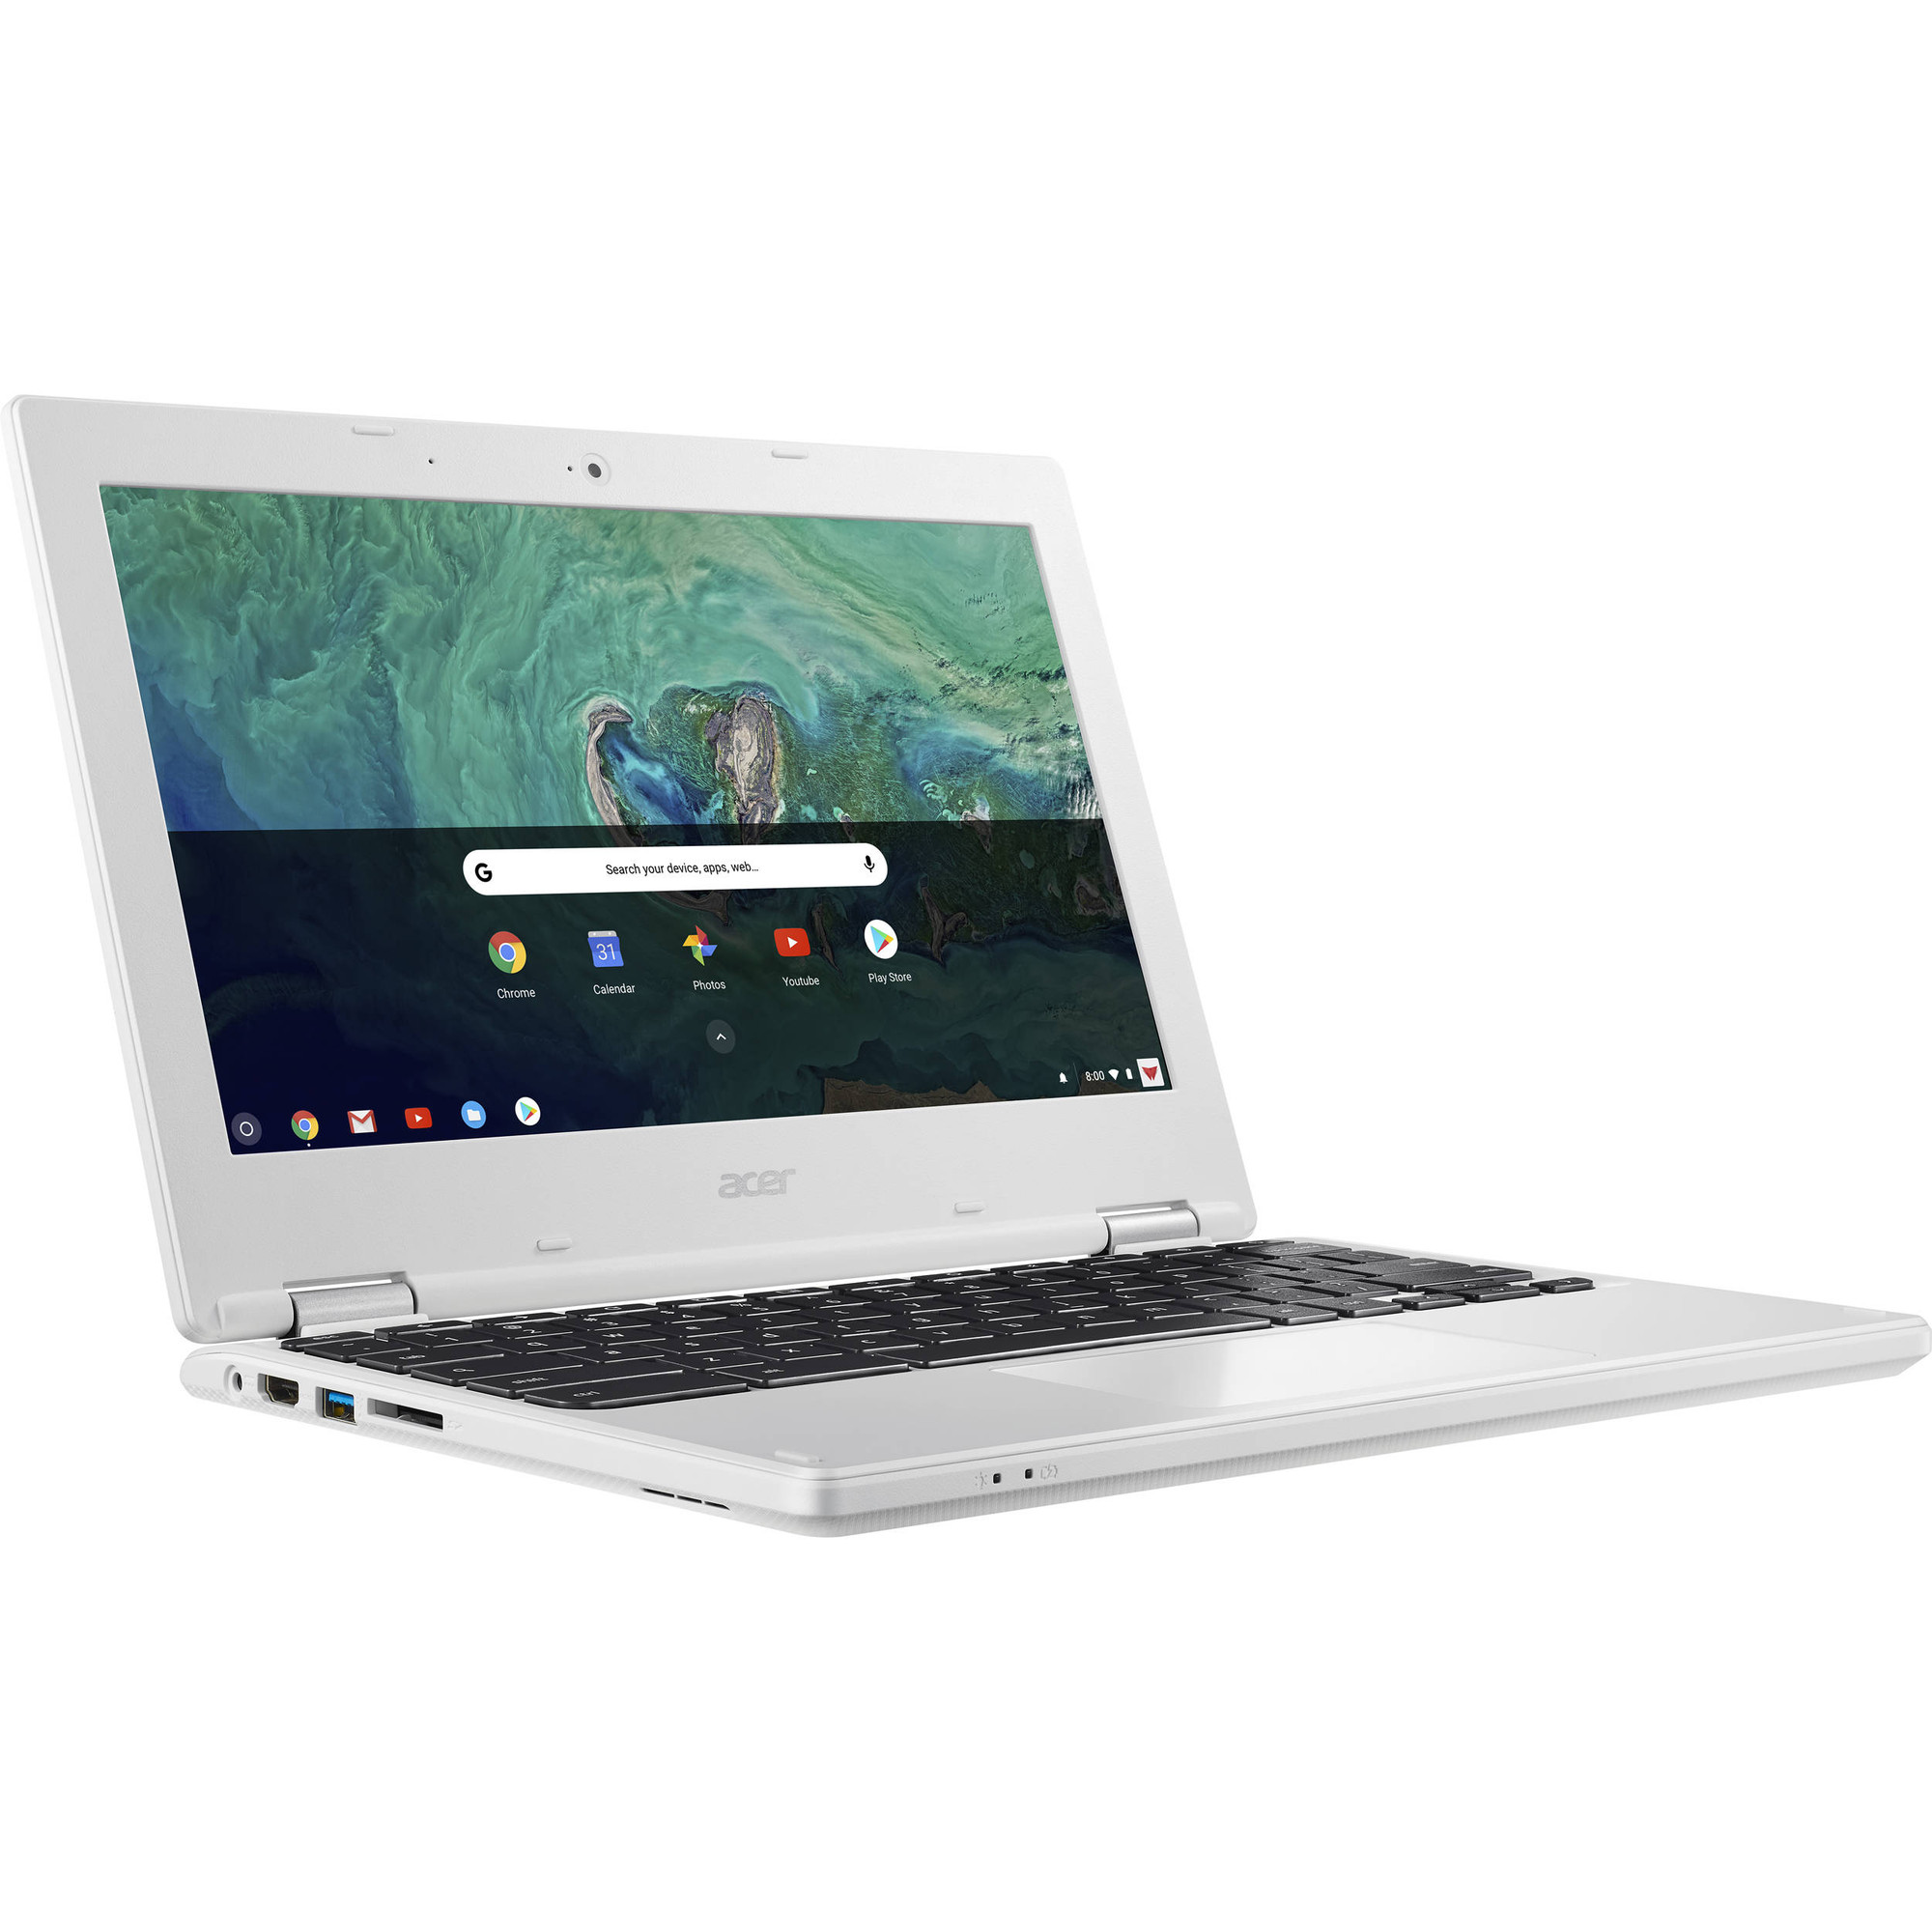 Acer 11 6 Chromebook 11 Intel Celeron N3060 1 6ghz 2gb Ram 16gb Flash Chrome Os